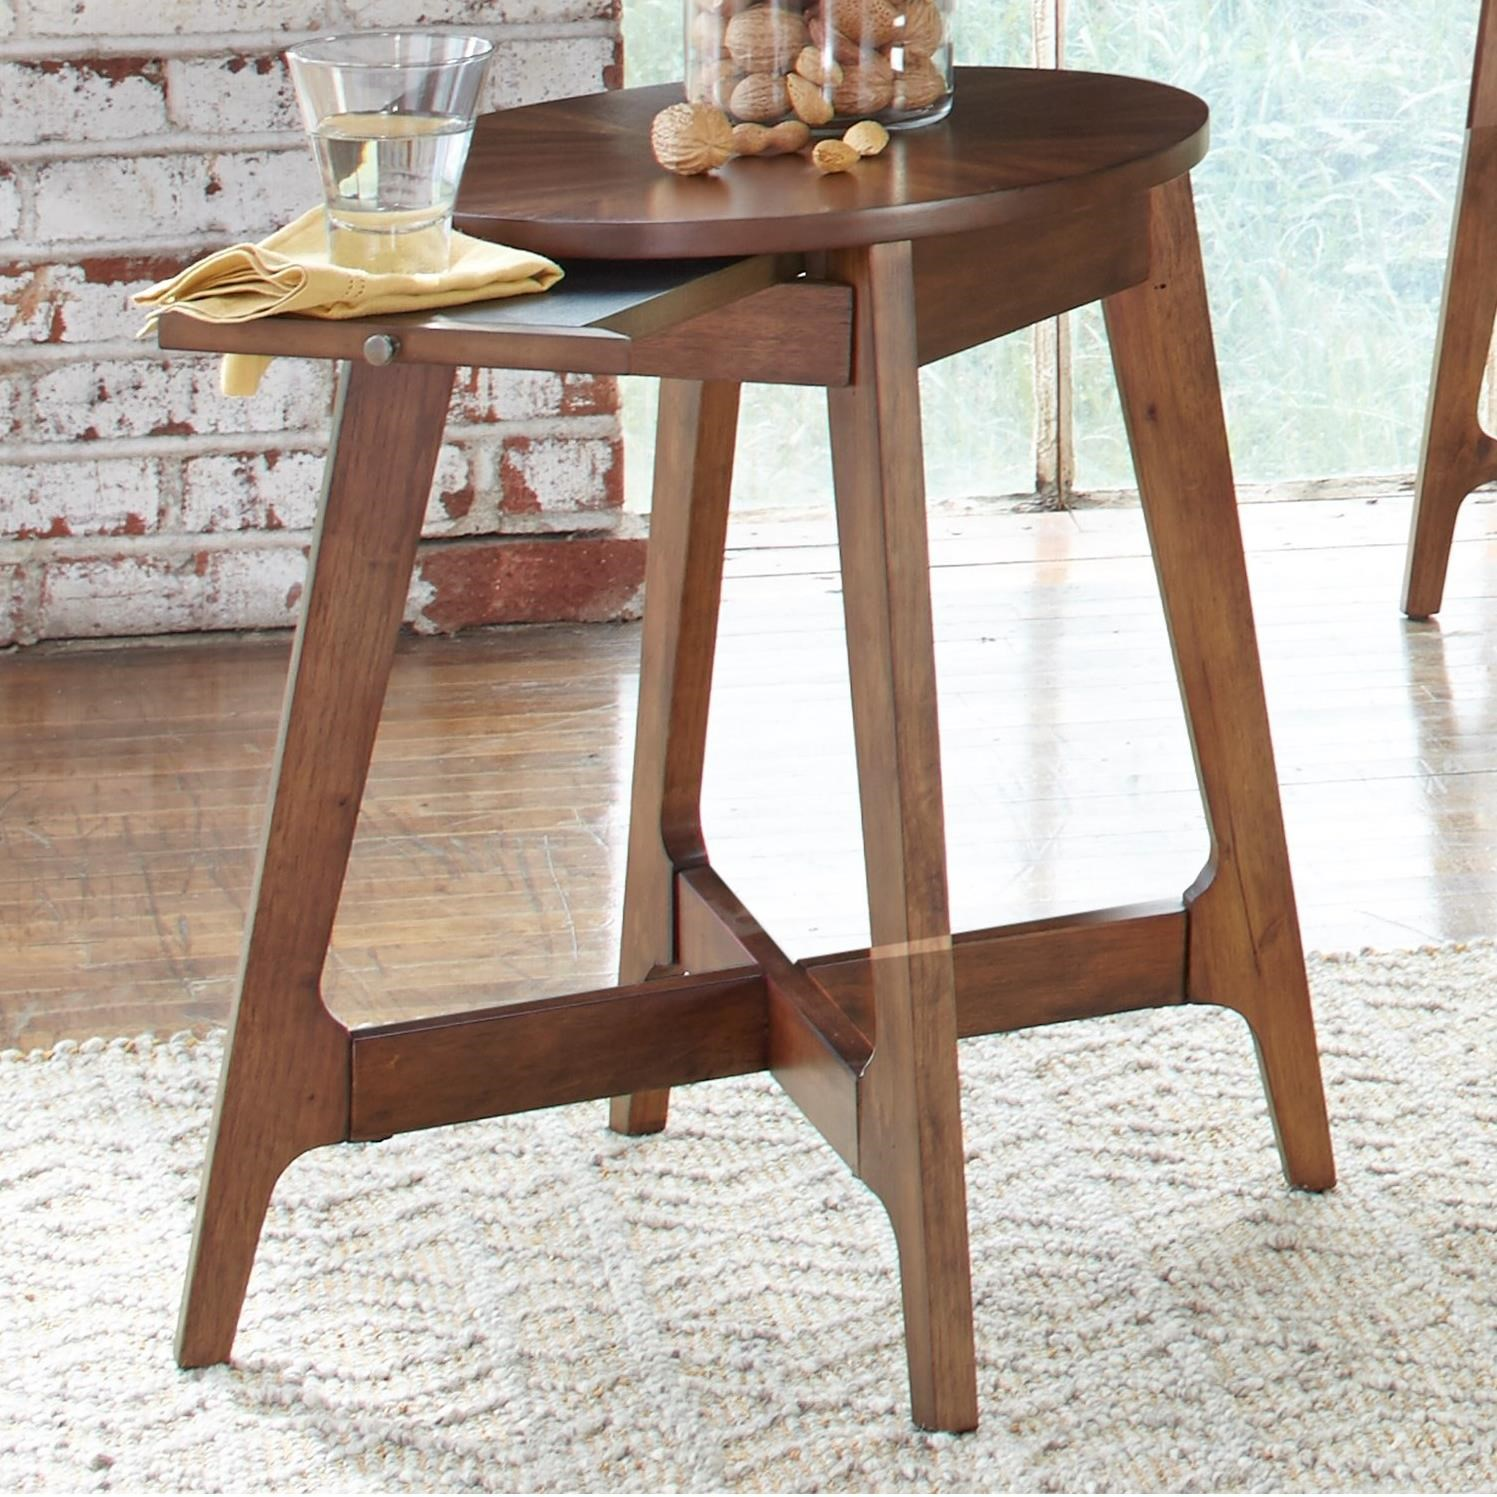 Liberty Furniture Landon Occasional Chair Side Table - Item Number: 72-OT1021